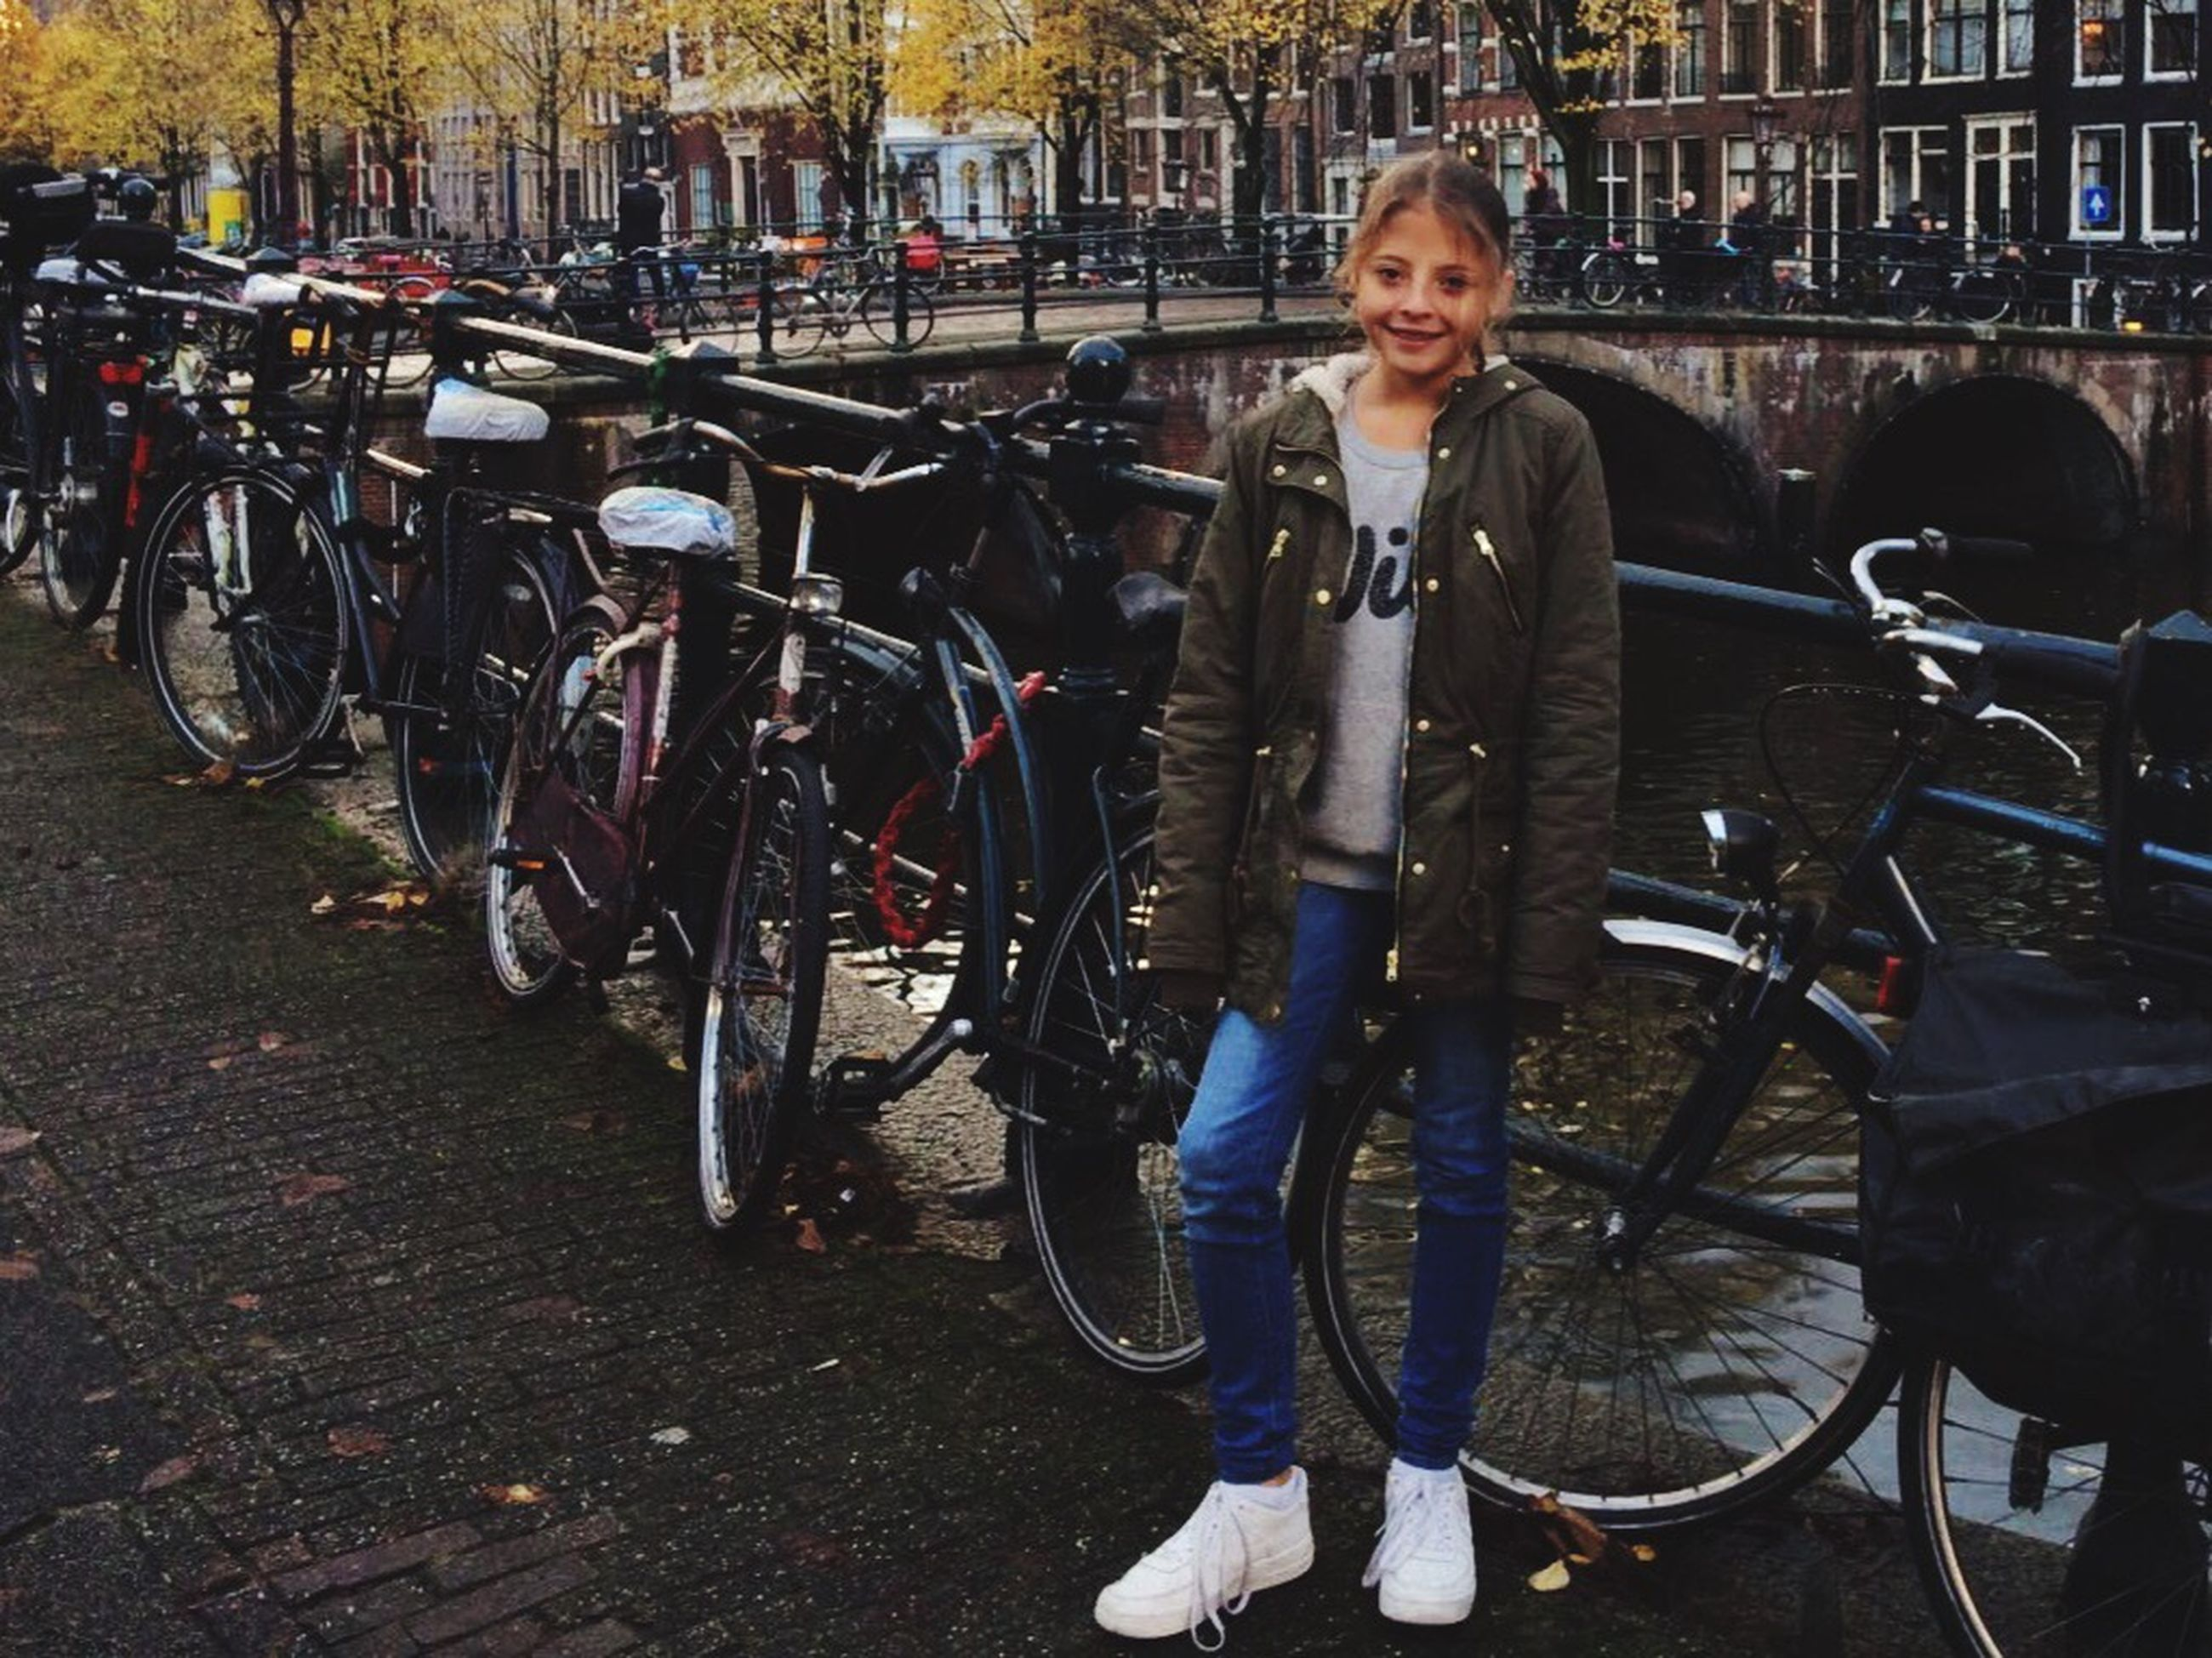 portrait, looking at camera, bicycle, city, casual clothing, transportation, adults only, mode of transport, lifestyles, one person, adult, people, outdoors, real people, one woman only, day